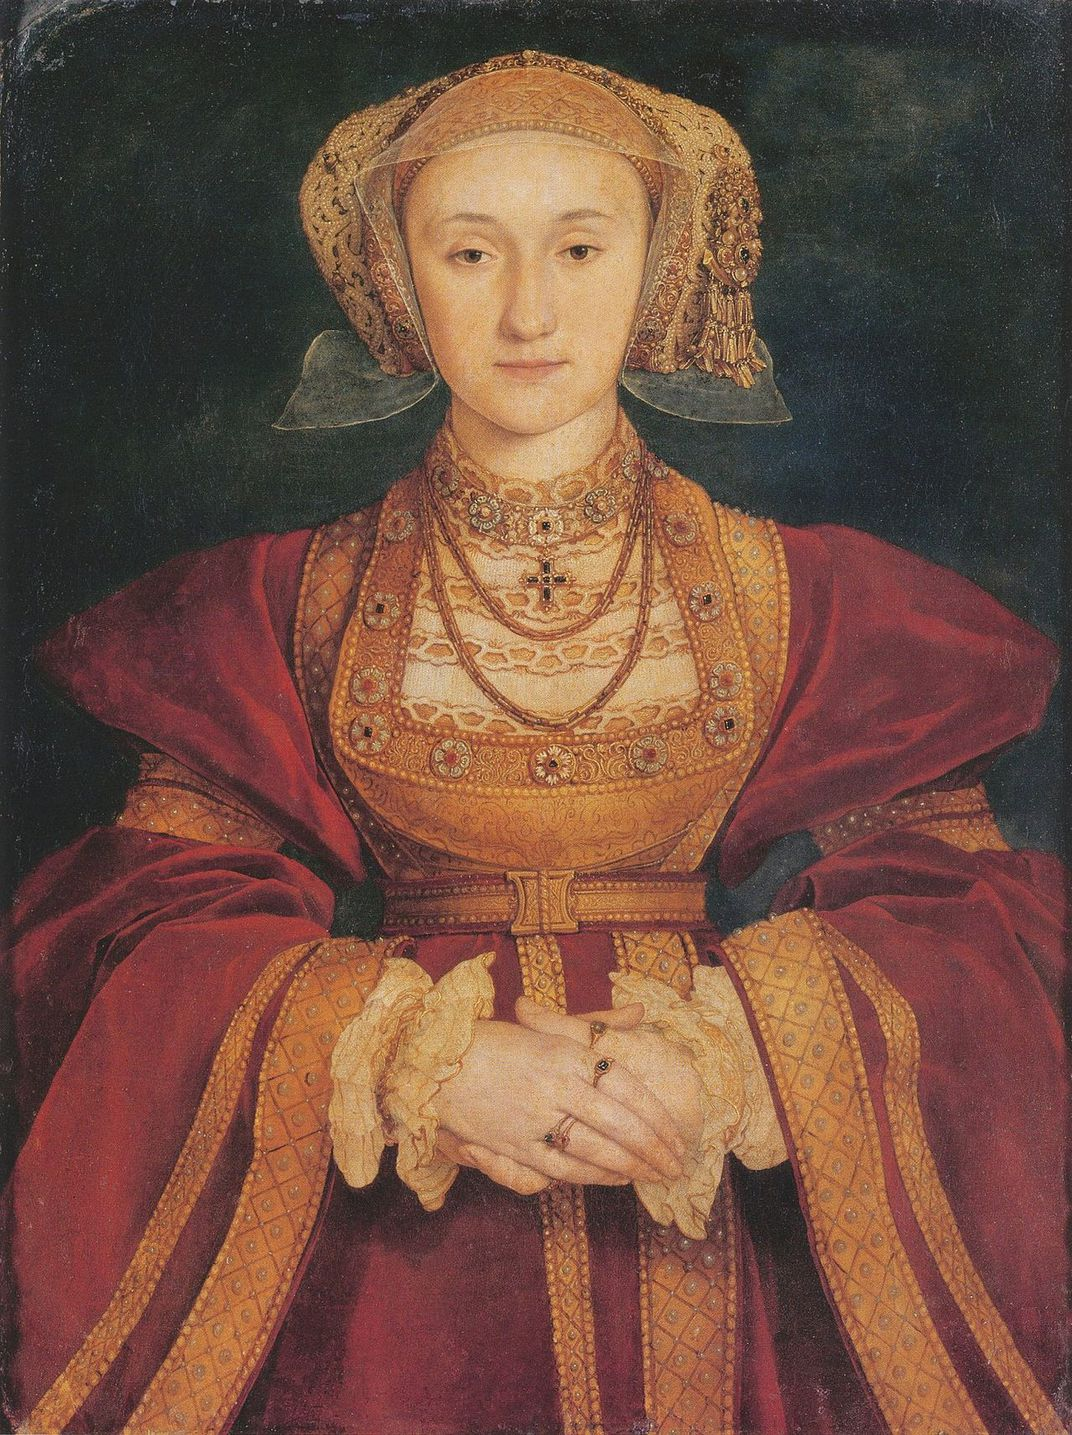 Hans Holbein's 1539 portrait of Anne of Cleves